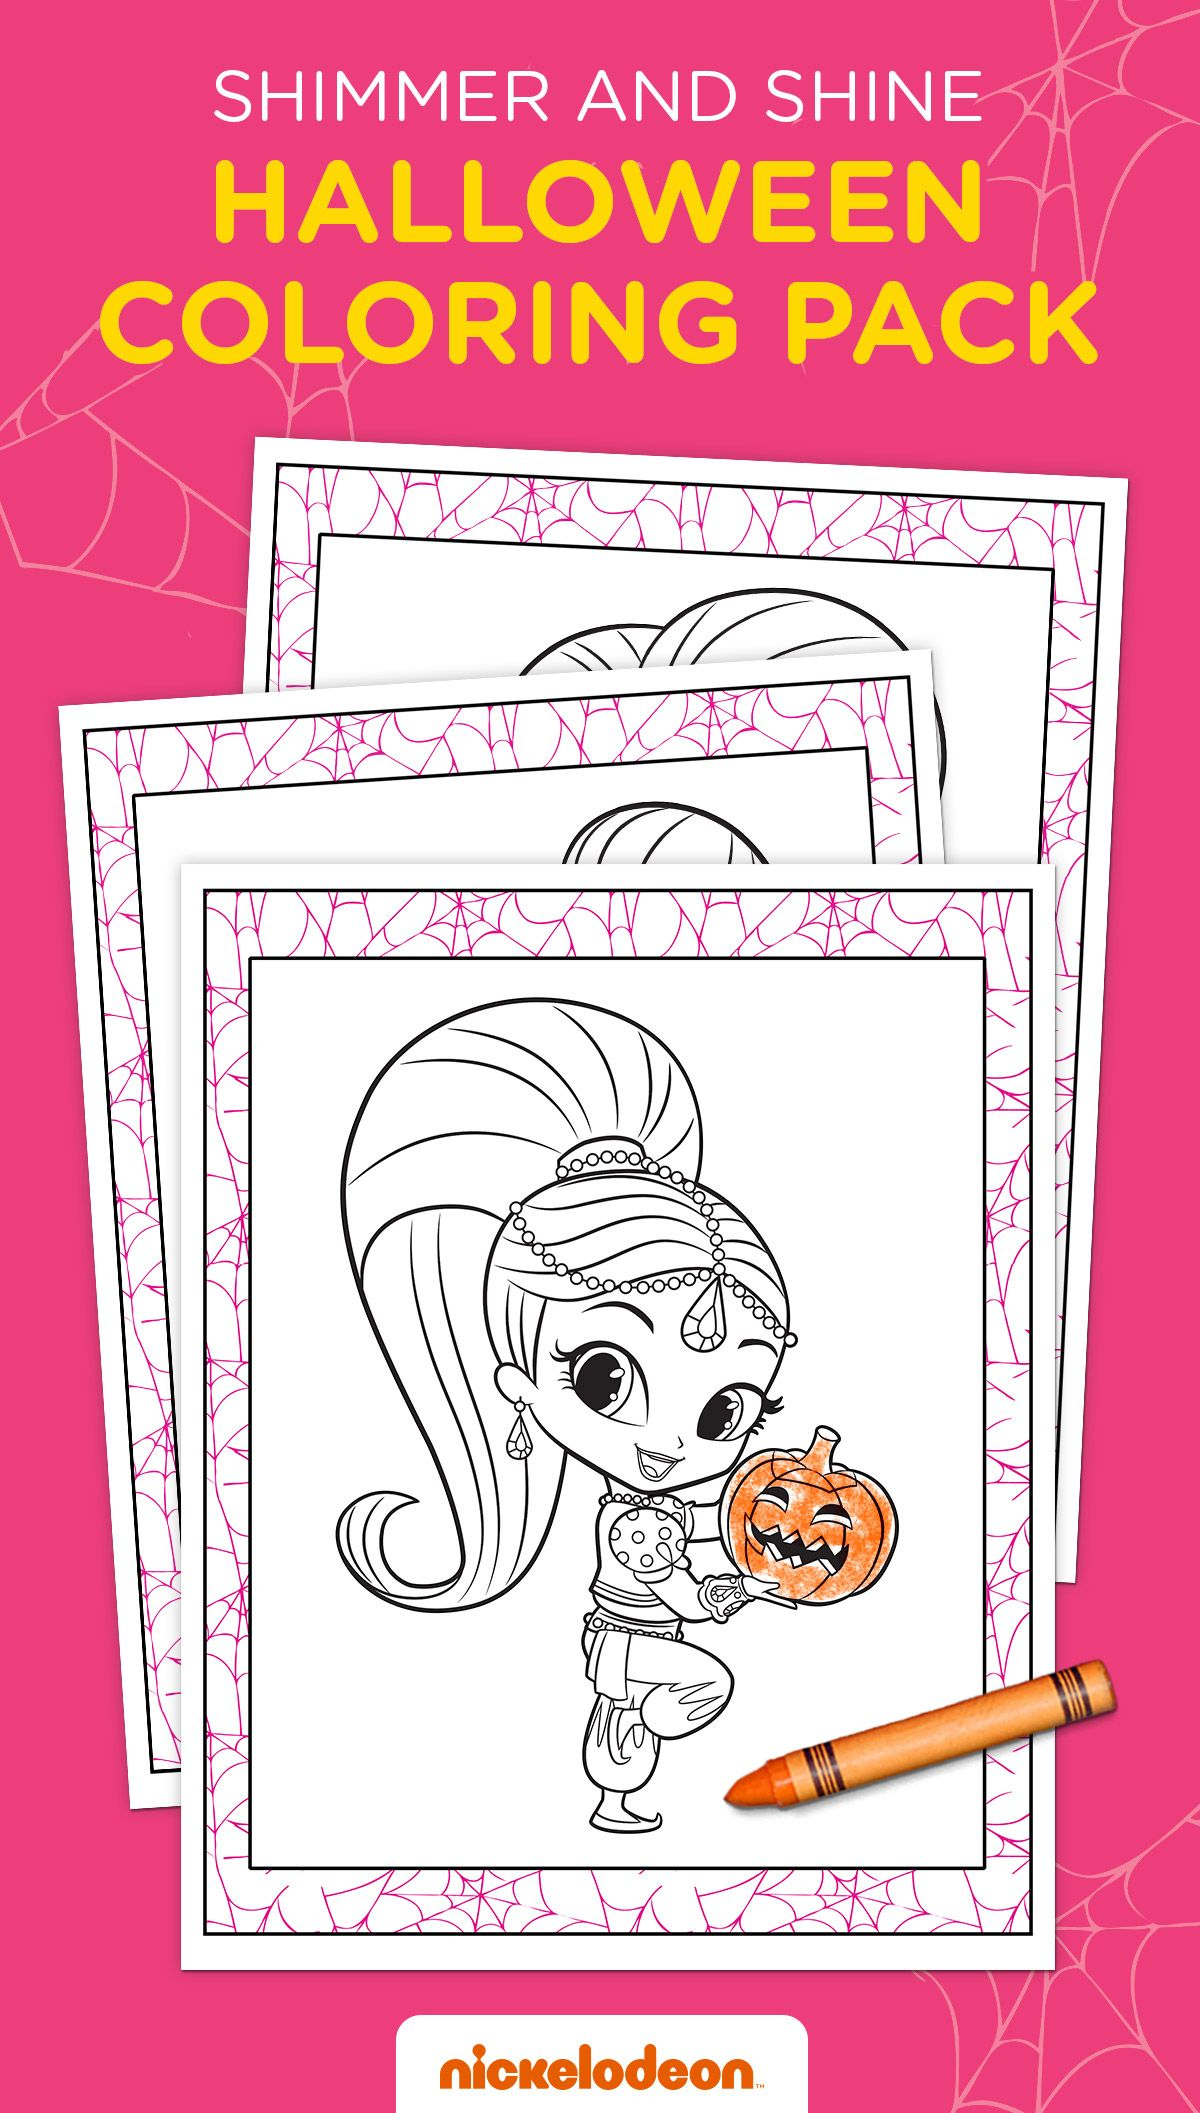 Shimmer and Shine Halloween Coloring